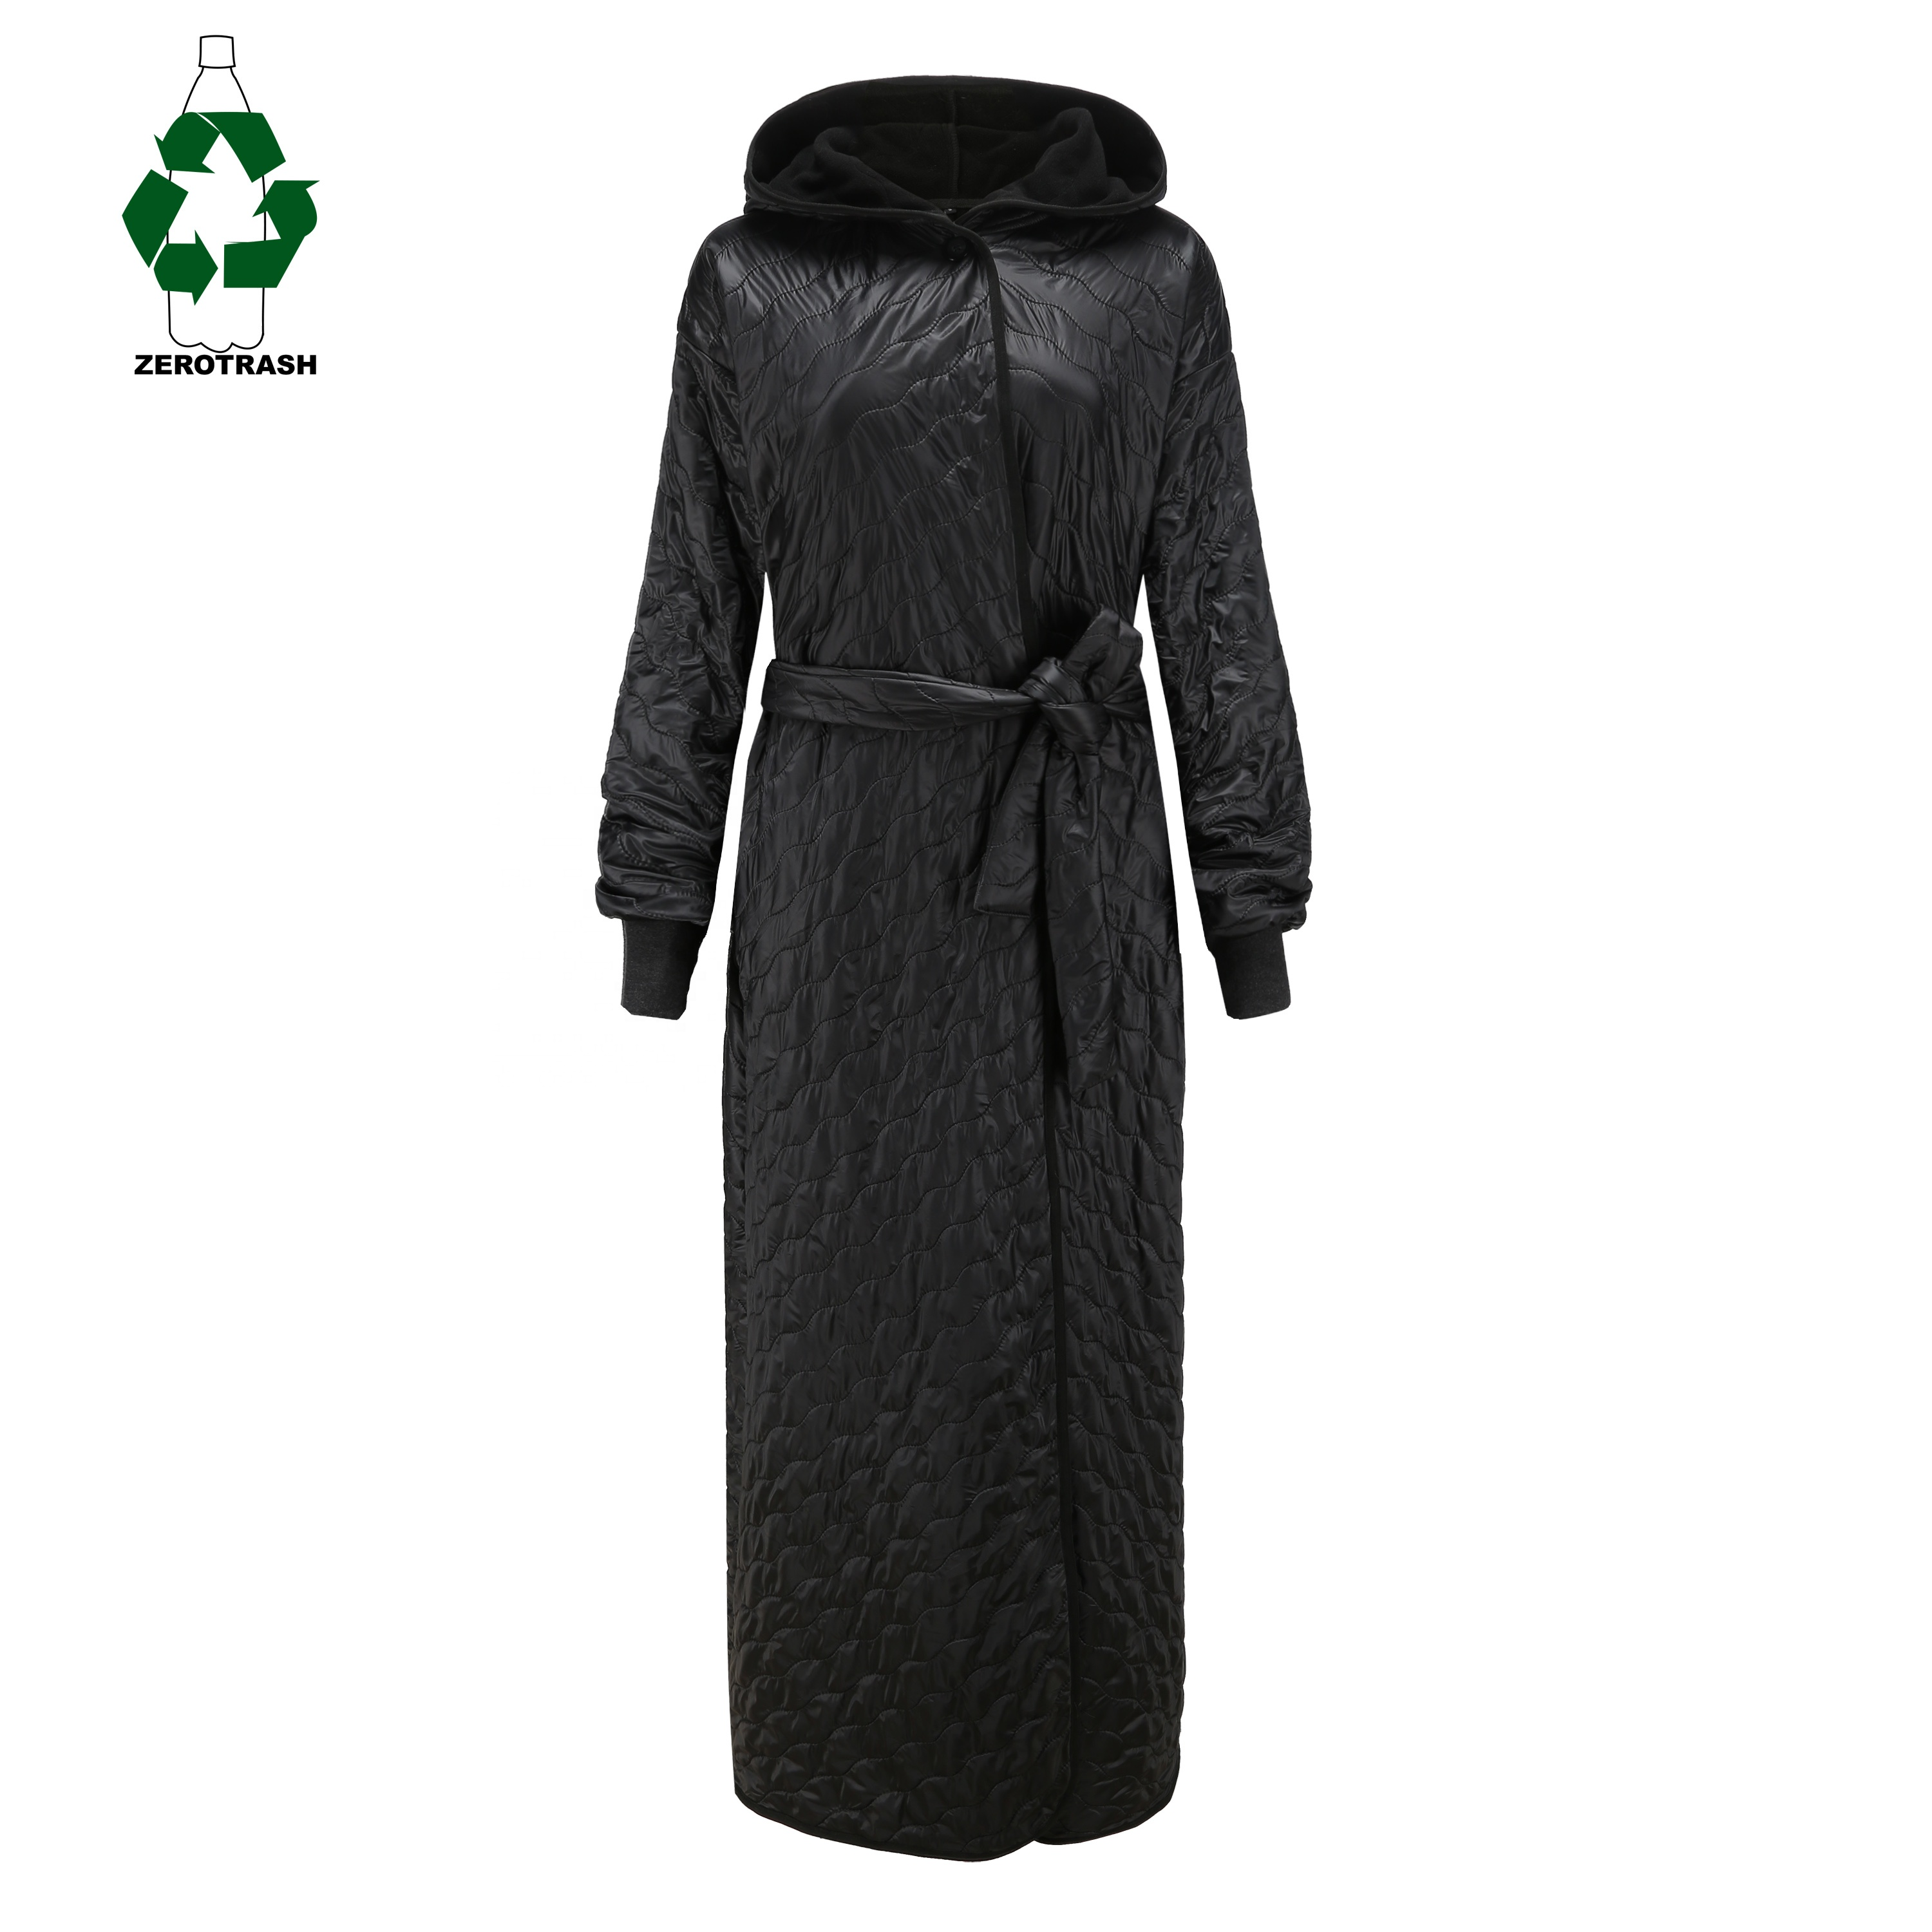 Women's Rpet Robe Warming Wind-proof Outdoor Long Body Beach Coat Recycled Polyester Quilted with Recycled Fleece